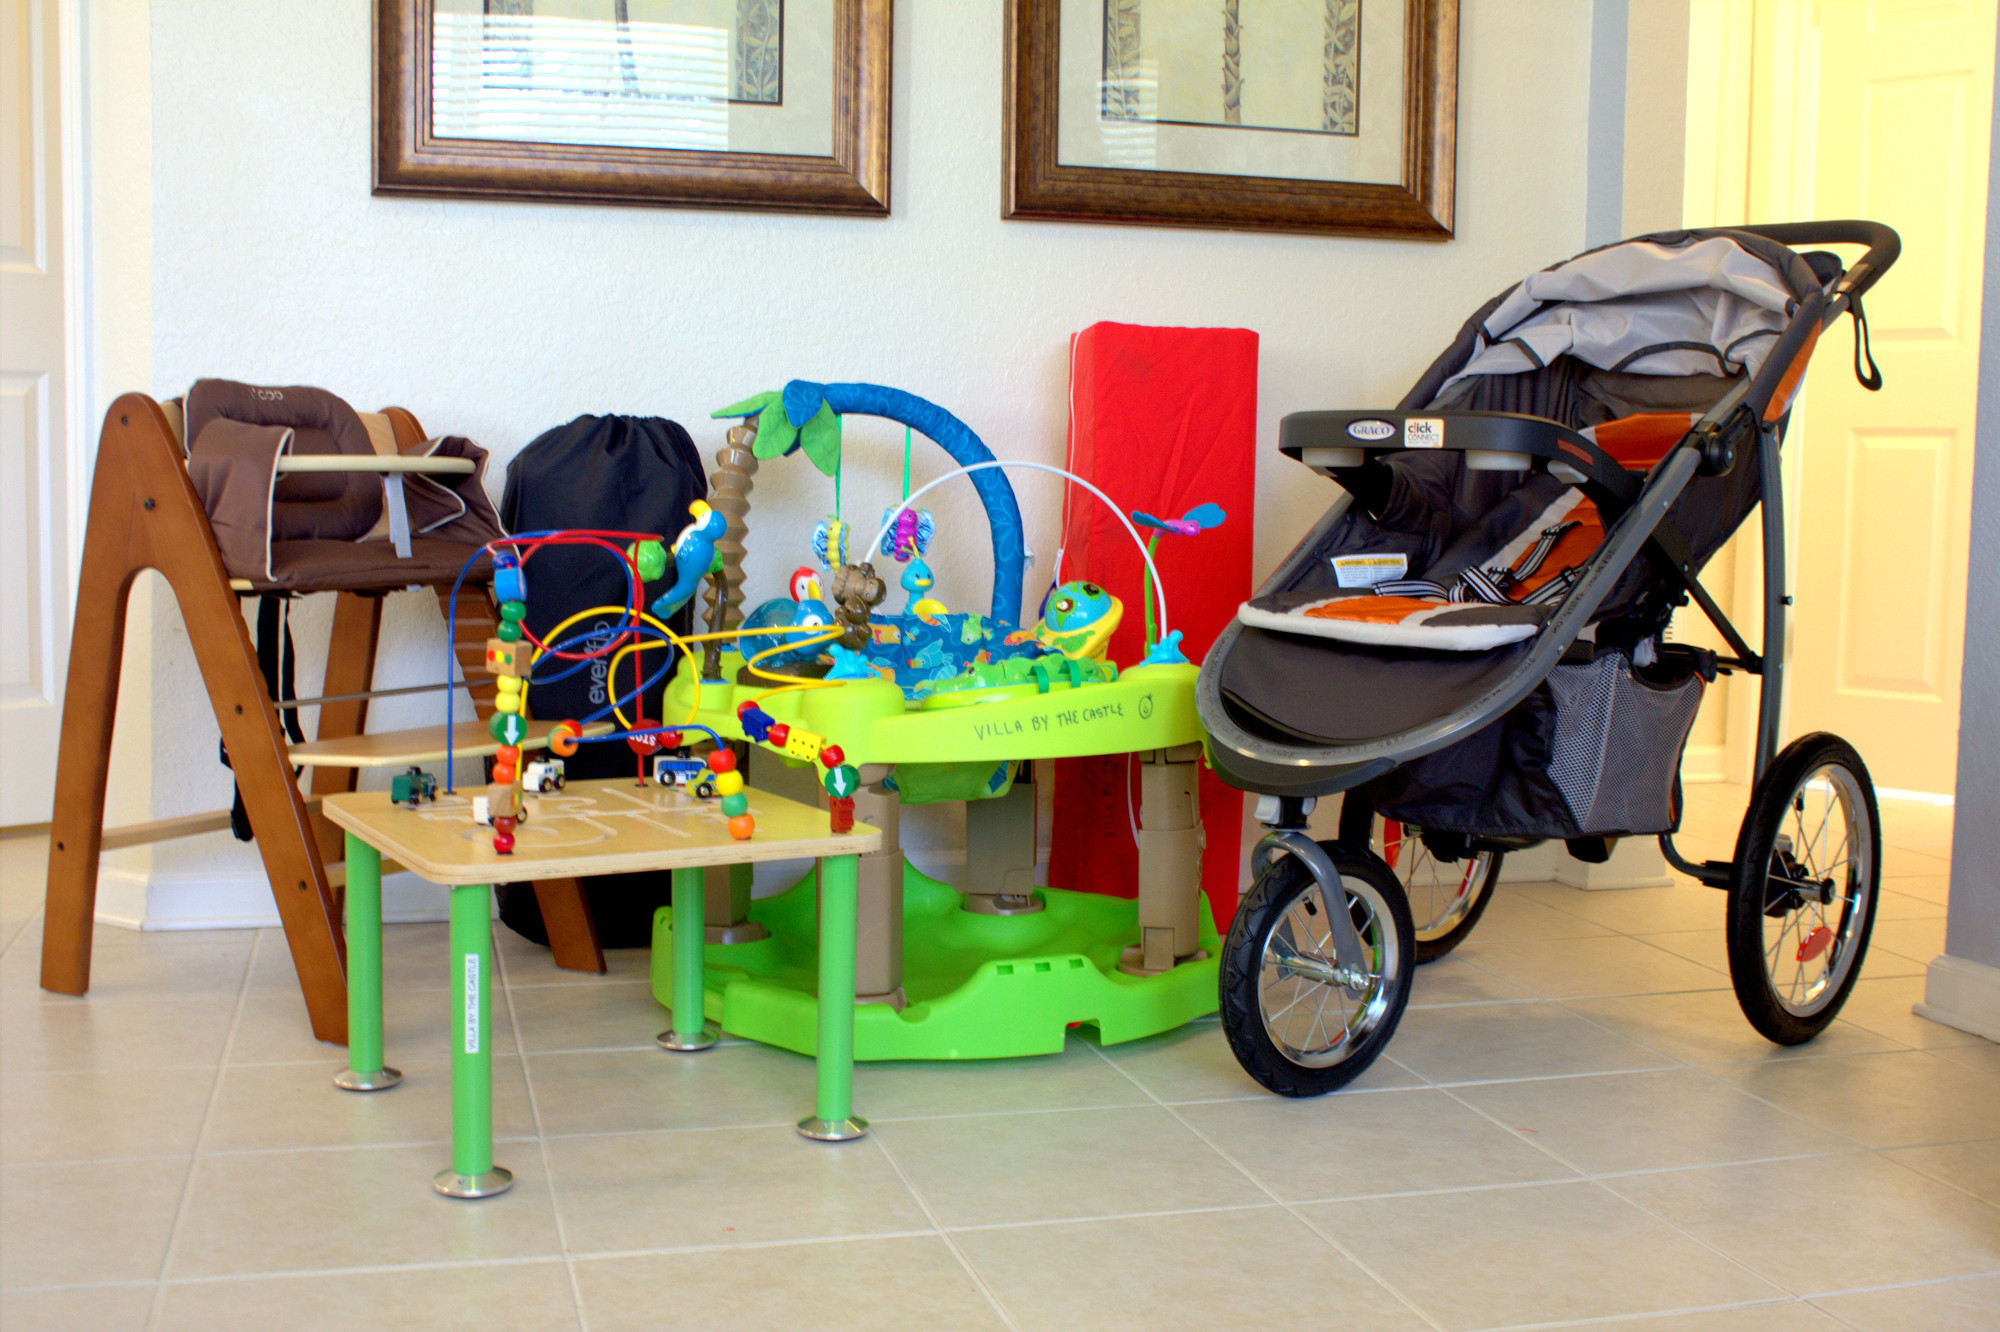 Villa By The Castle Baby Equipment  Villa By The Castle